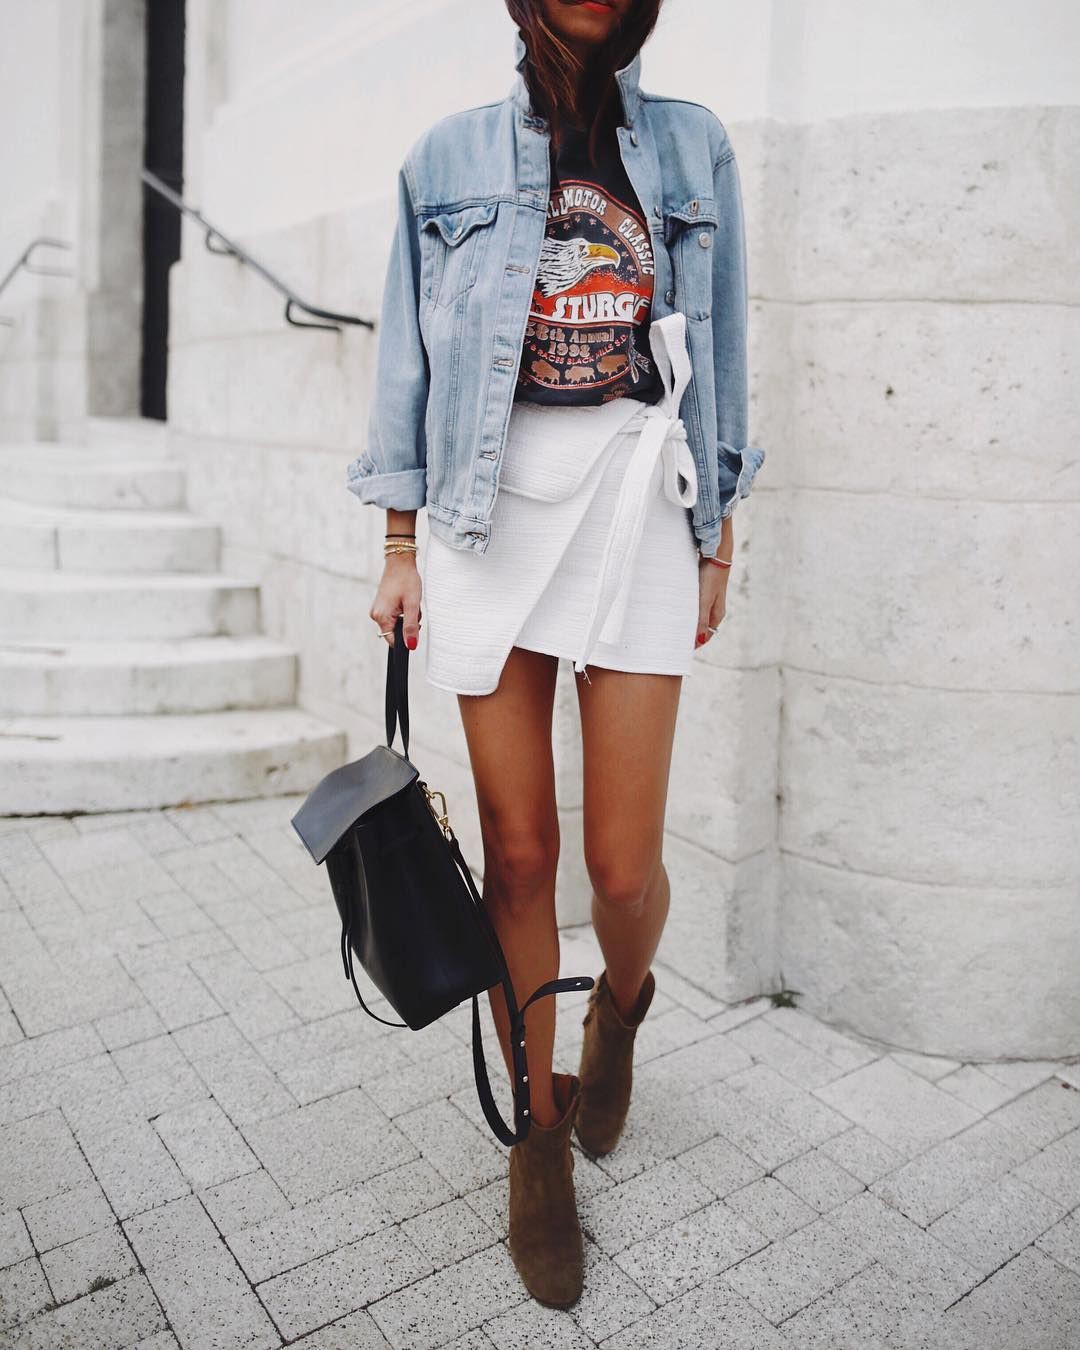 Graphic shirt and cowboy boots style